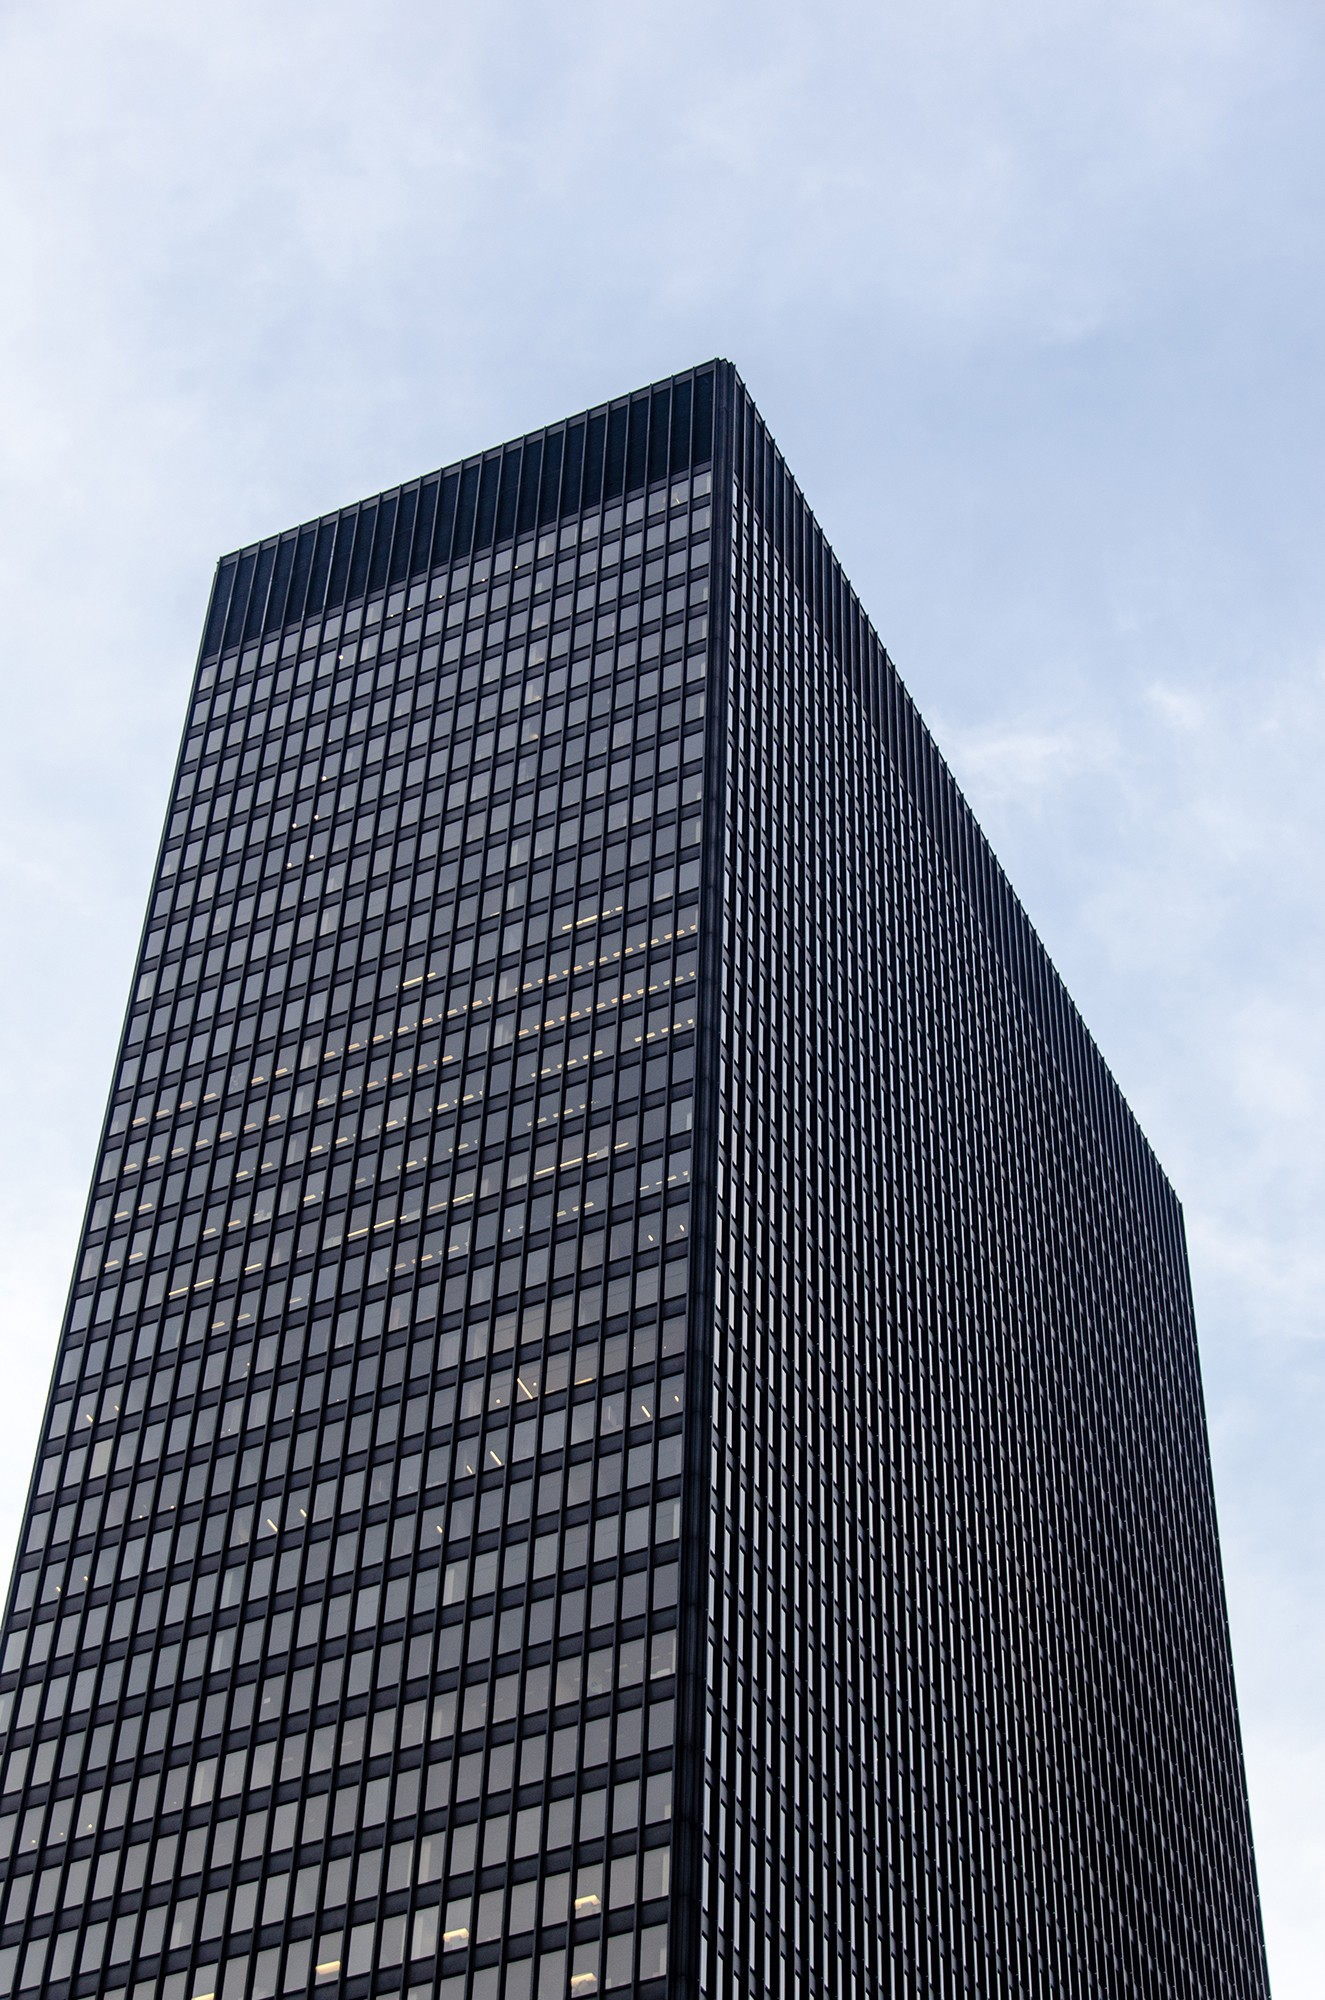 Chicago Mies Van Der Rohe Tour 330 north wabash / ama plaza (ibm plaza) · buildings of